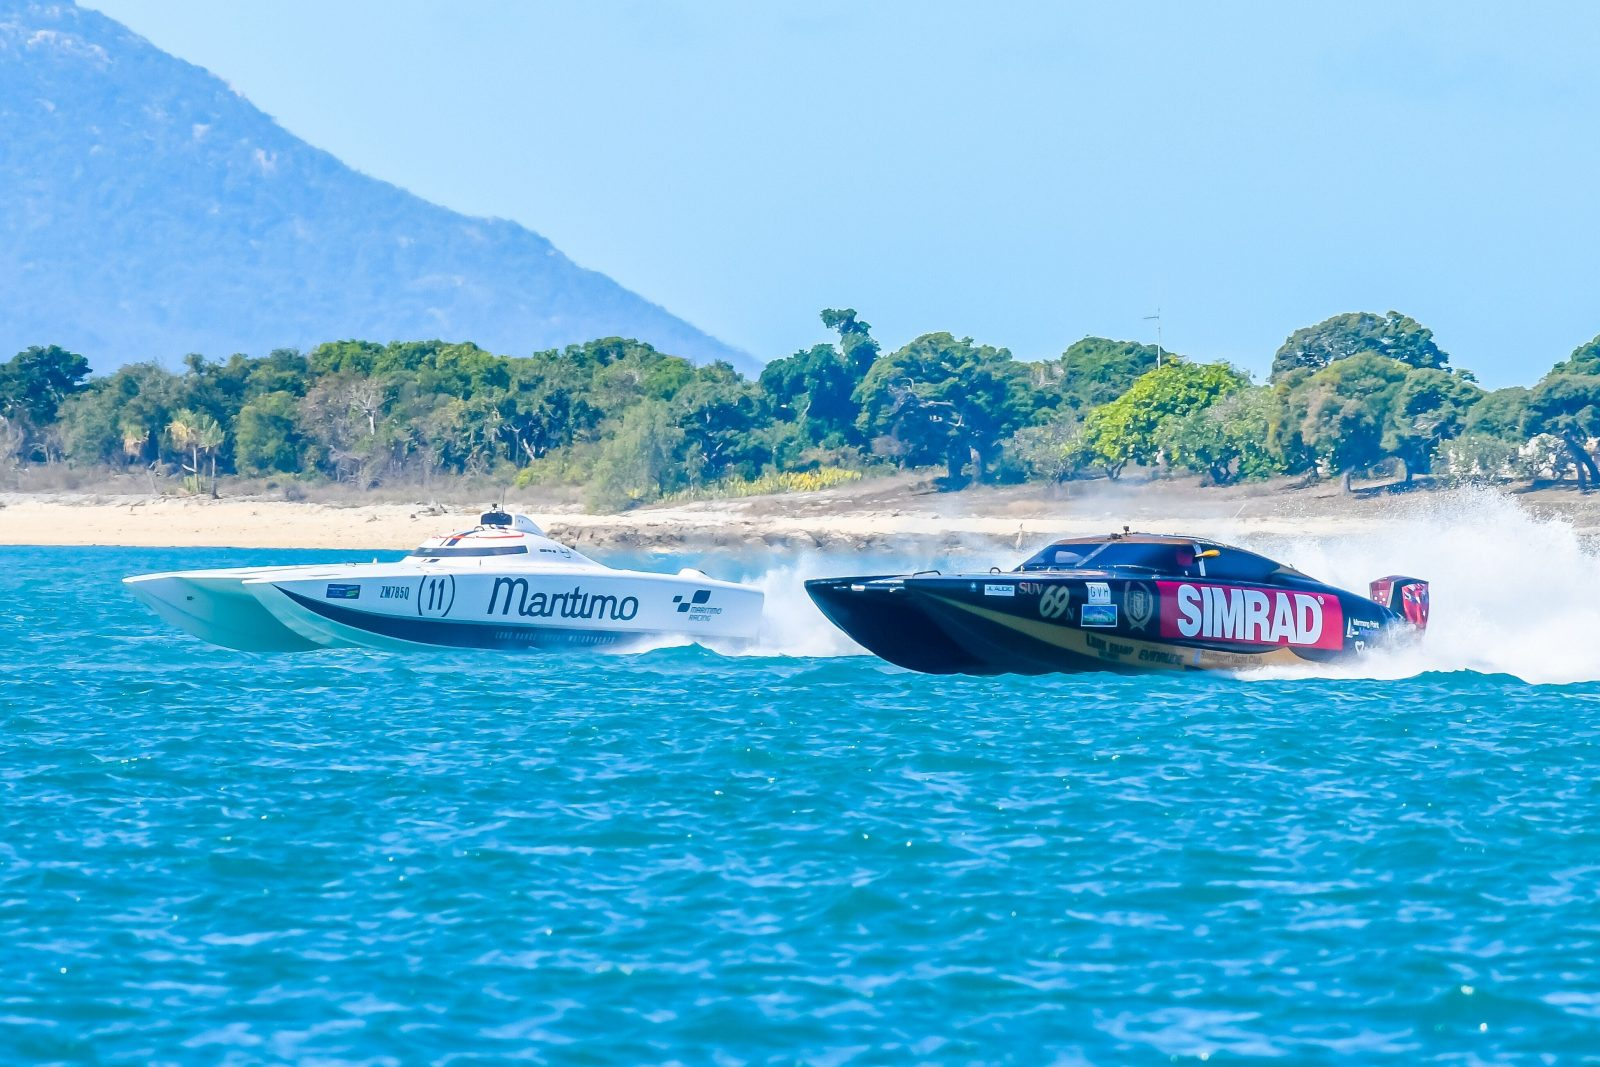 Two superboats racing on the ocean